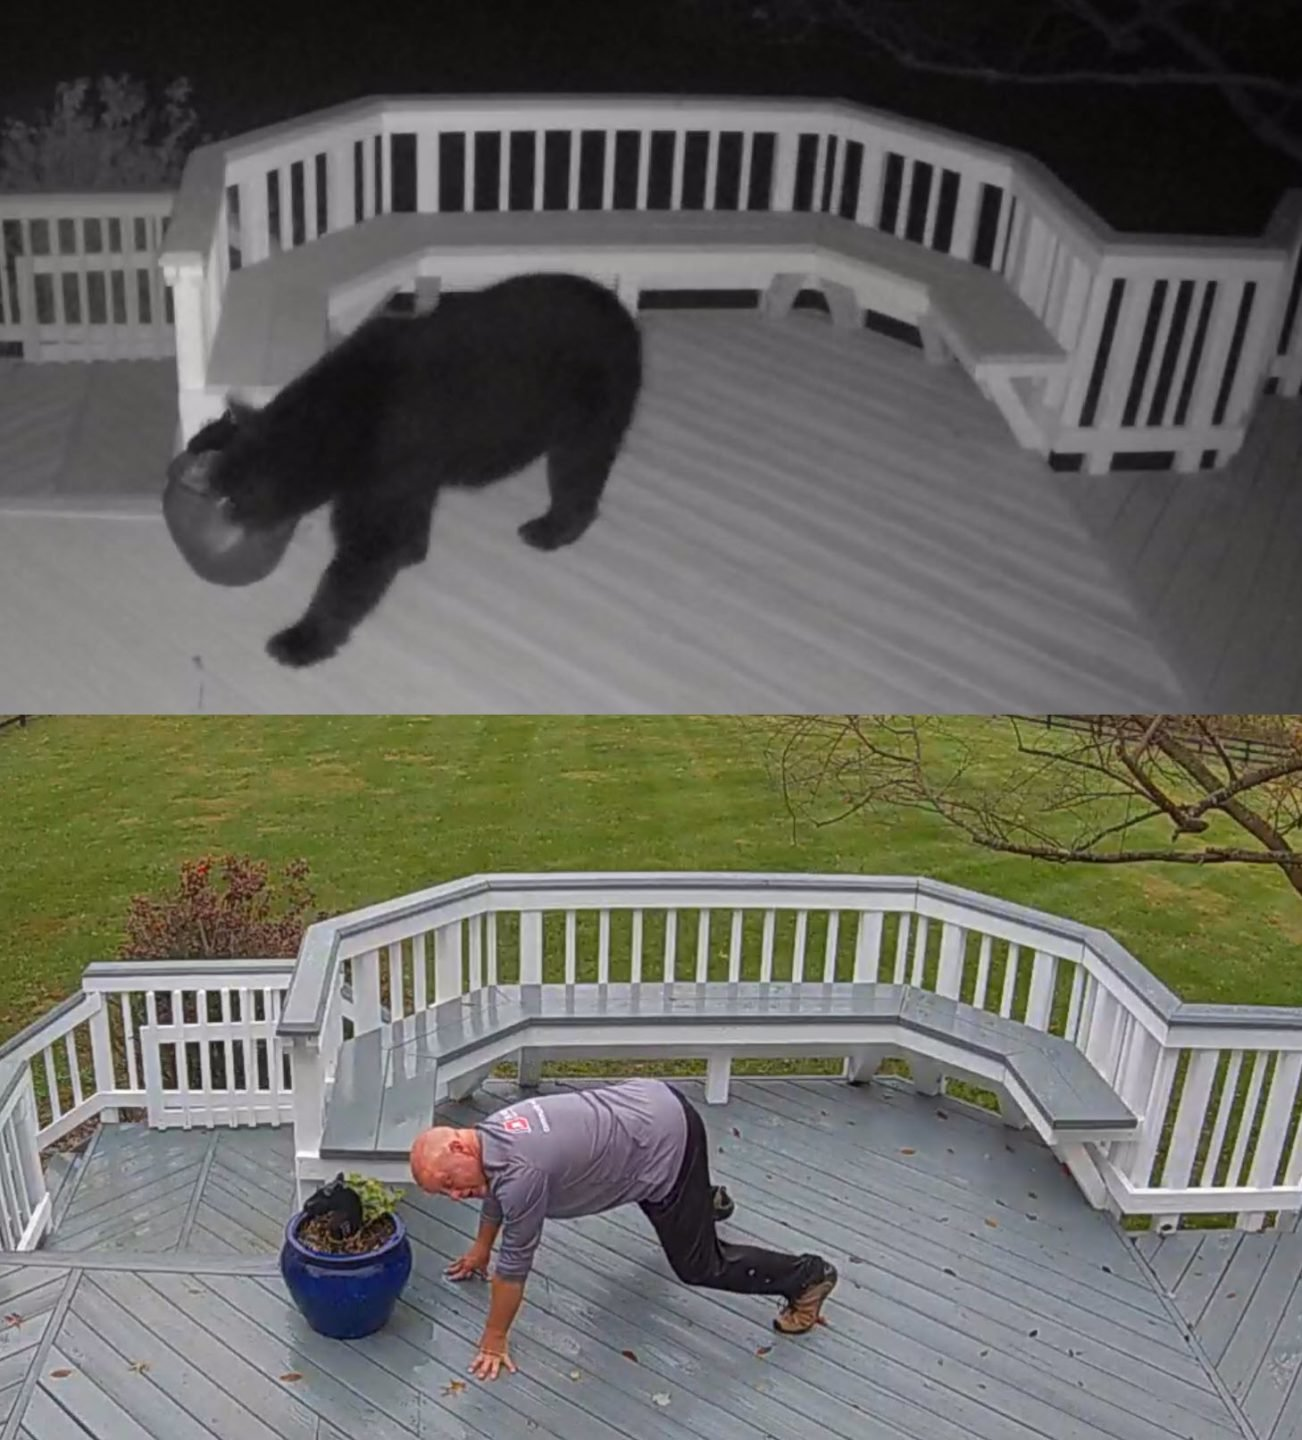 Comparison of Black Bear to Homeowner